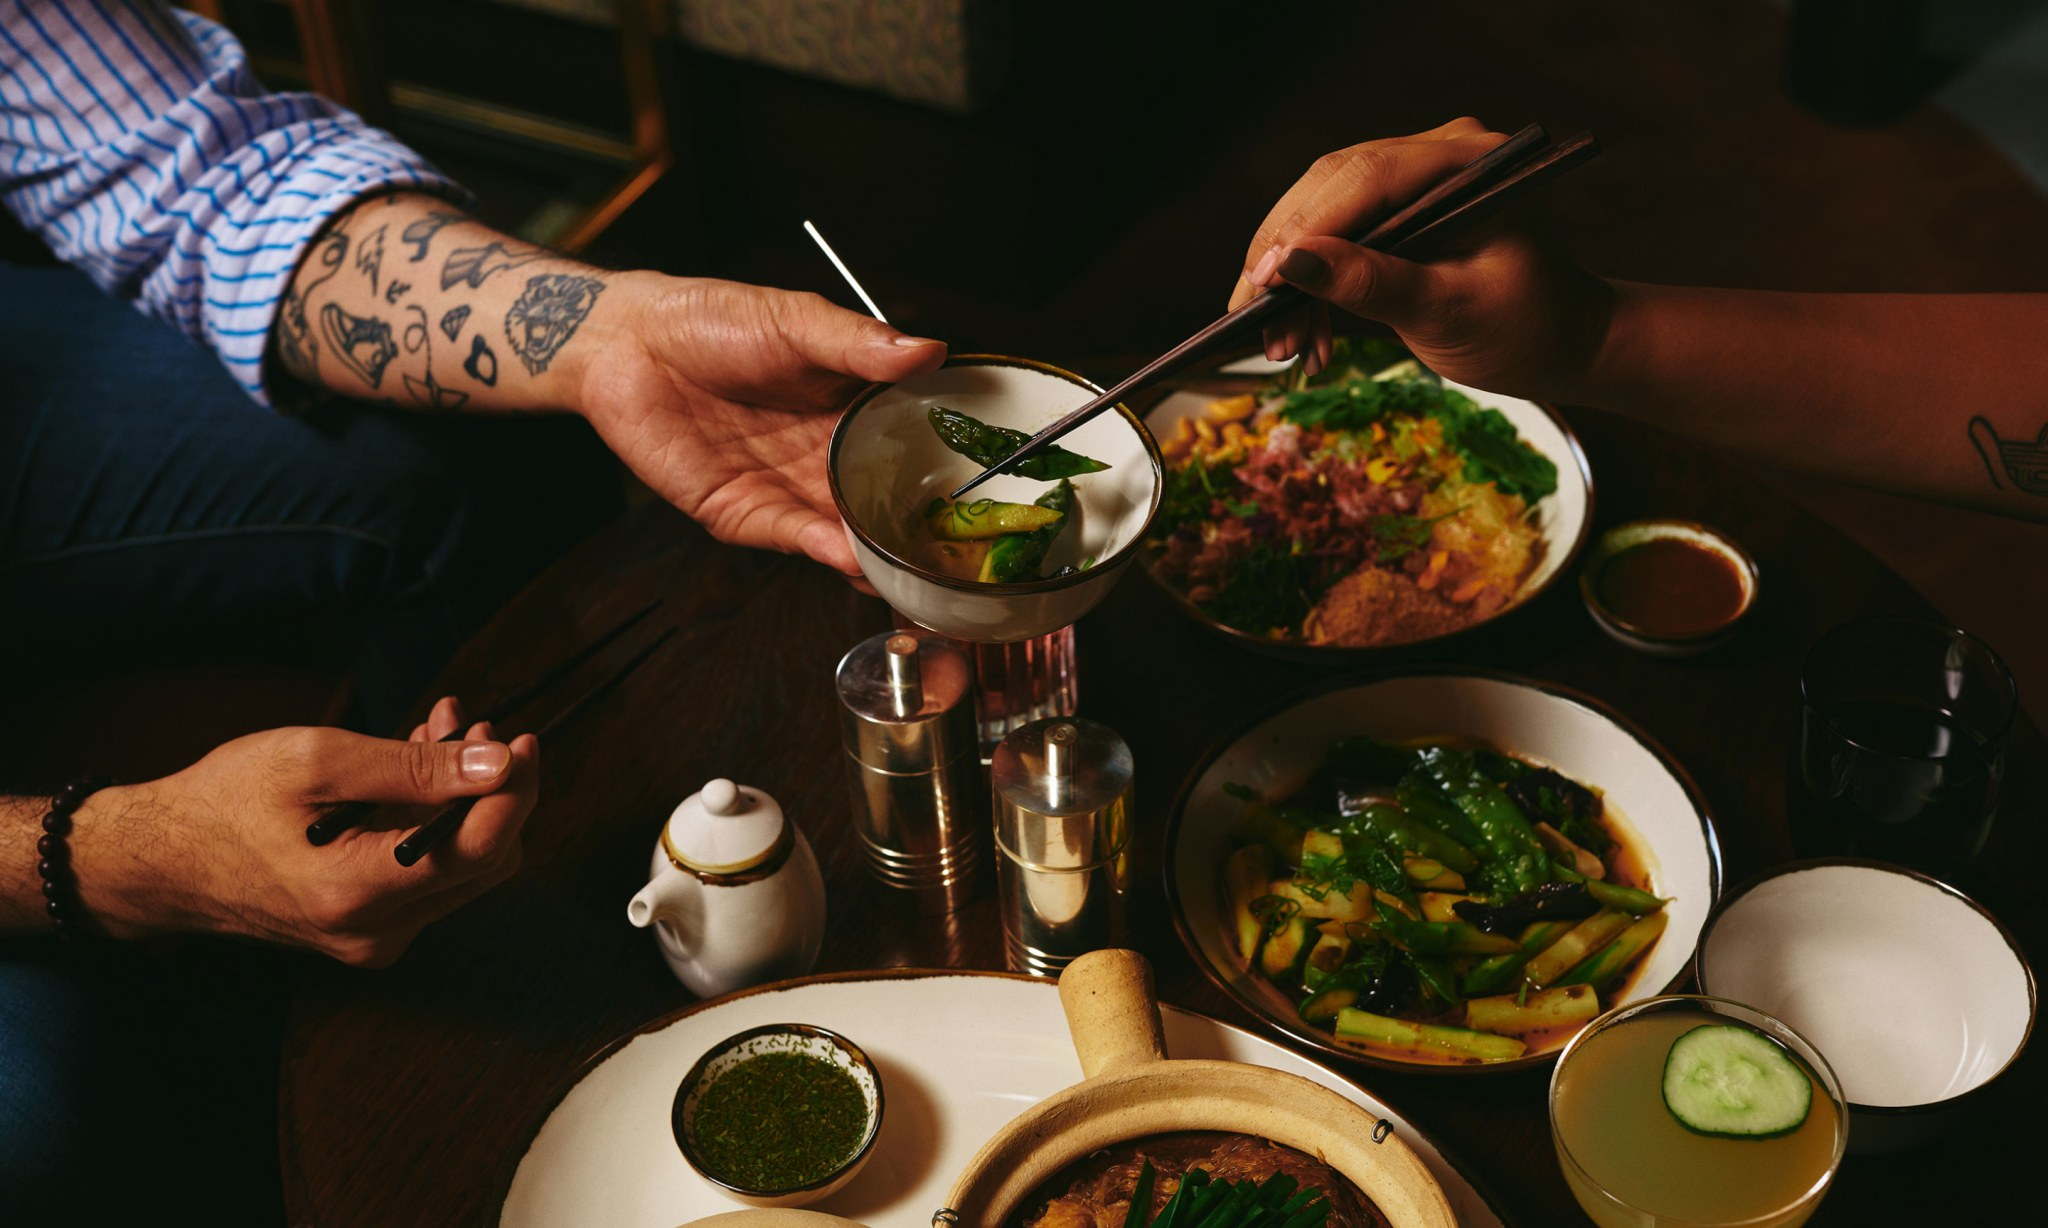 A man and a woman share Asian food.